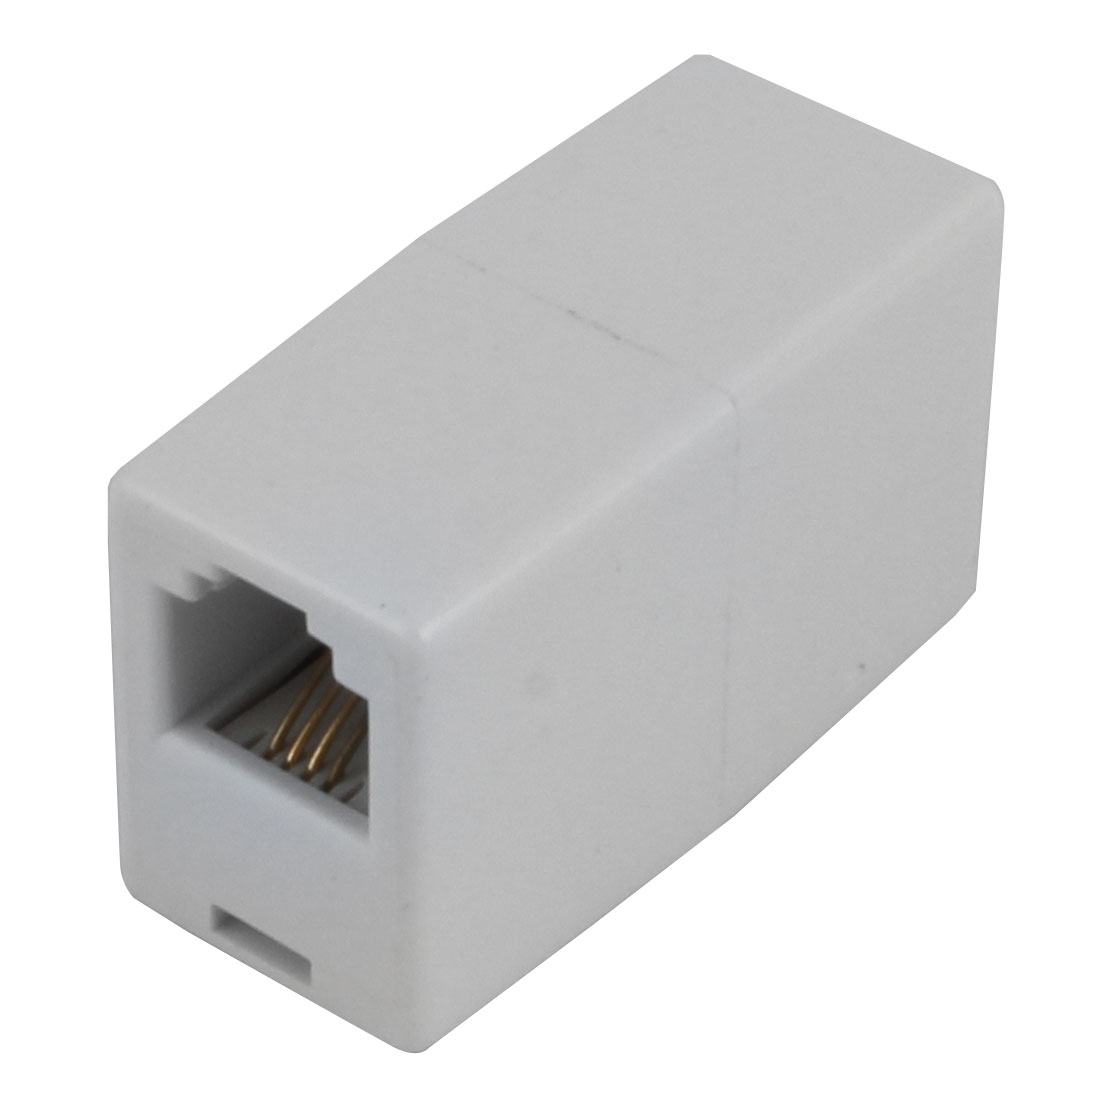 RJ11 Fax Phone Straight Coupler Connector Extender